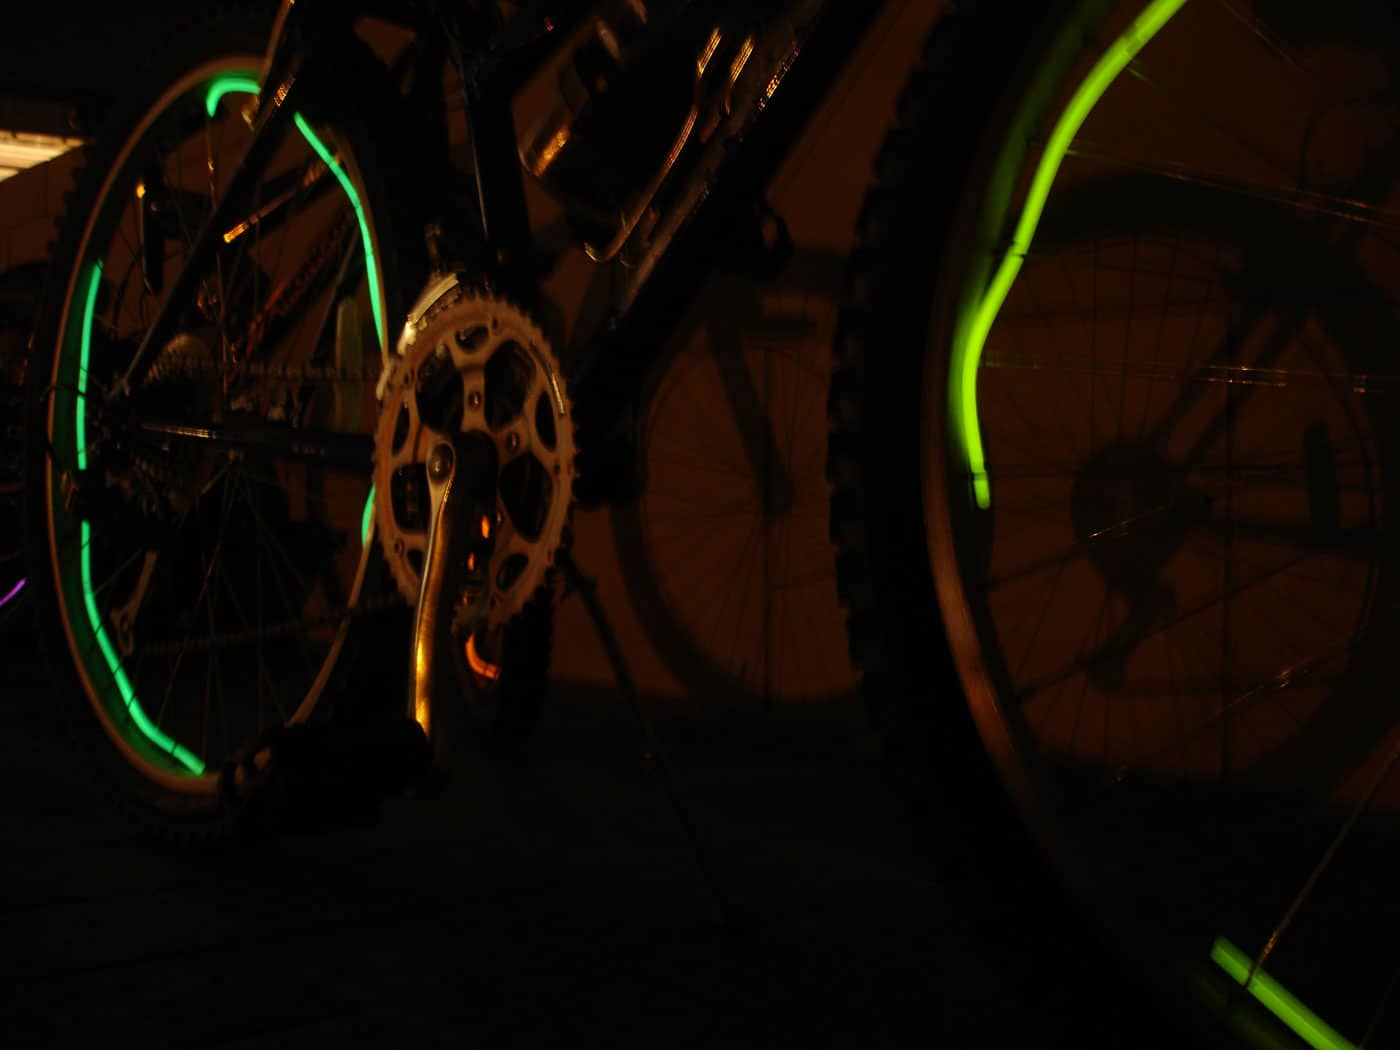 glow stick necklace wrapped around the spokes of a bike